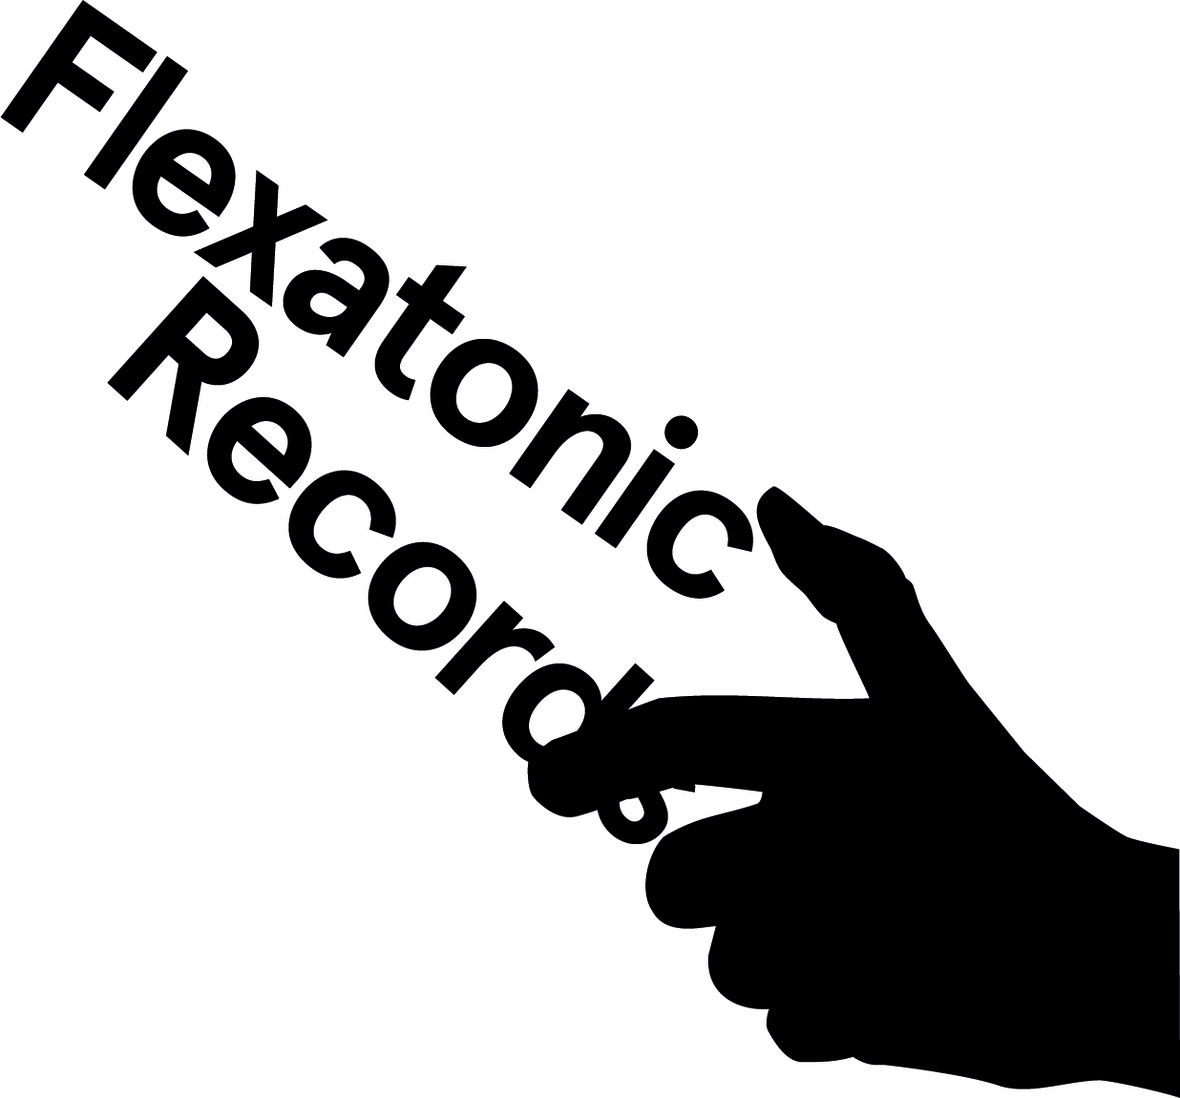 Flexatonic logoA